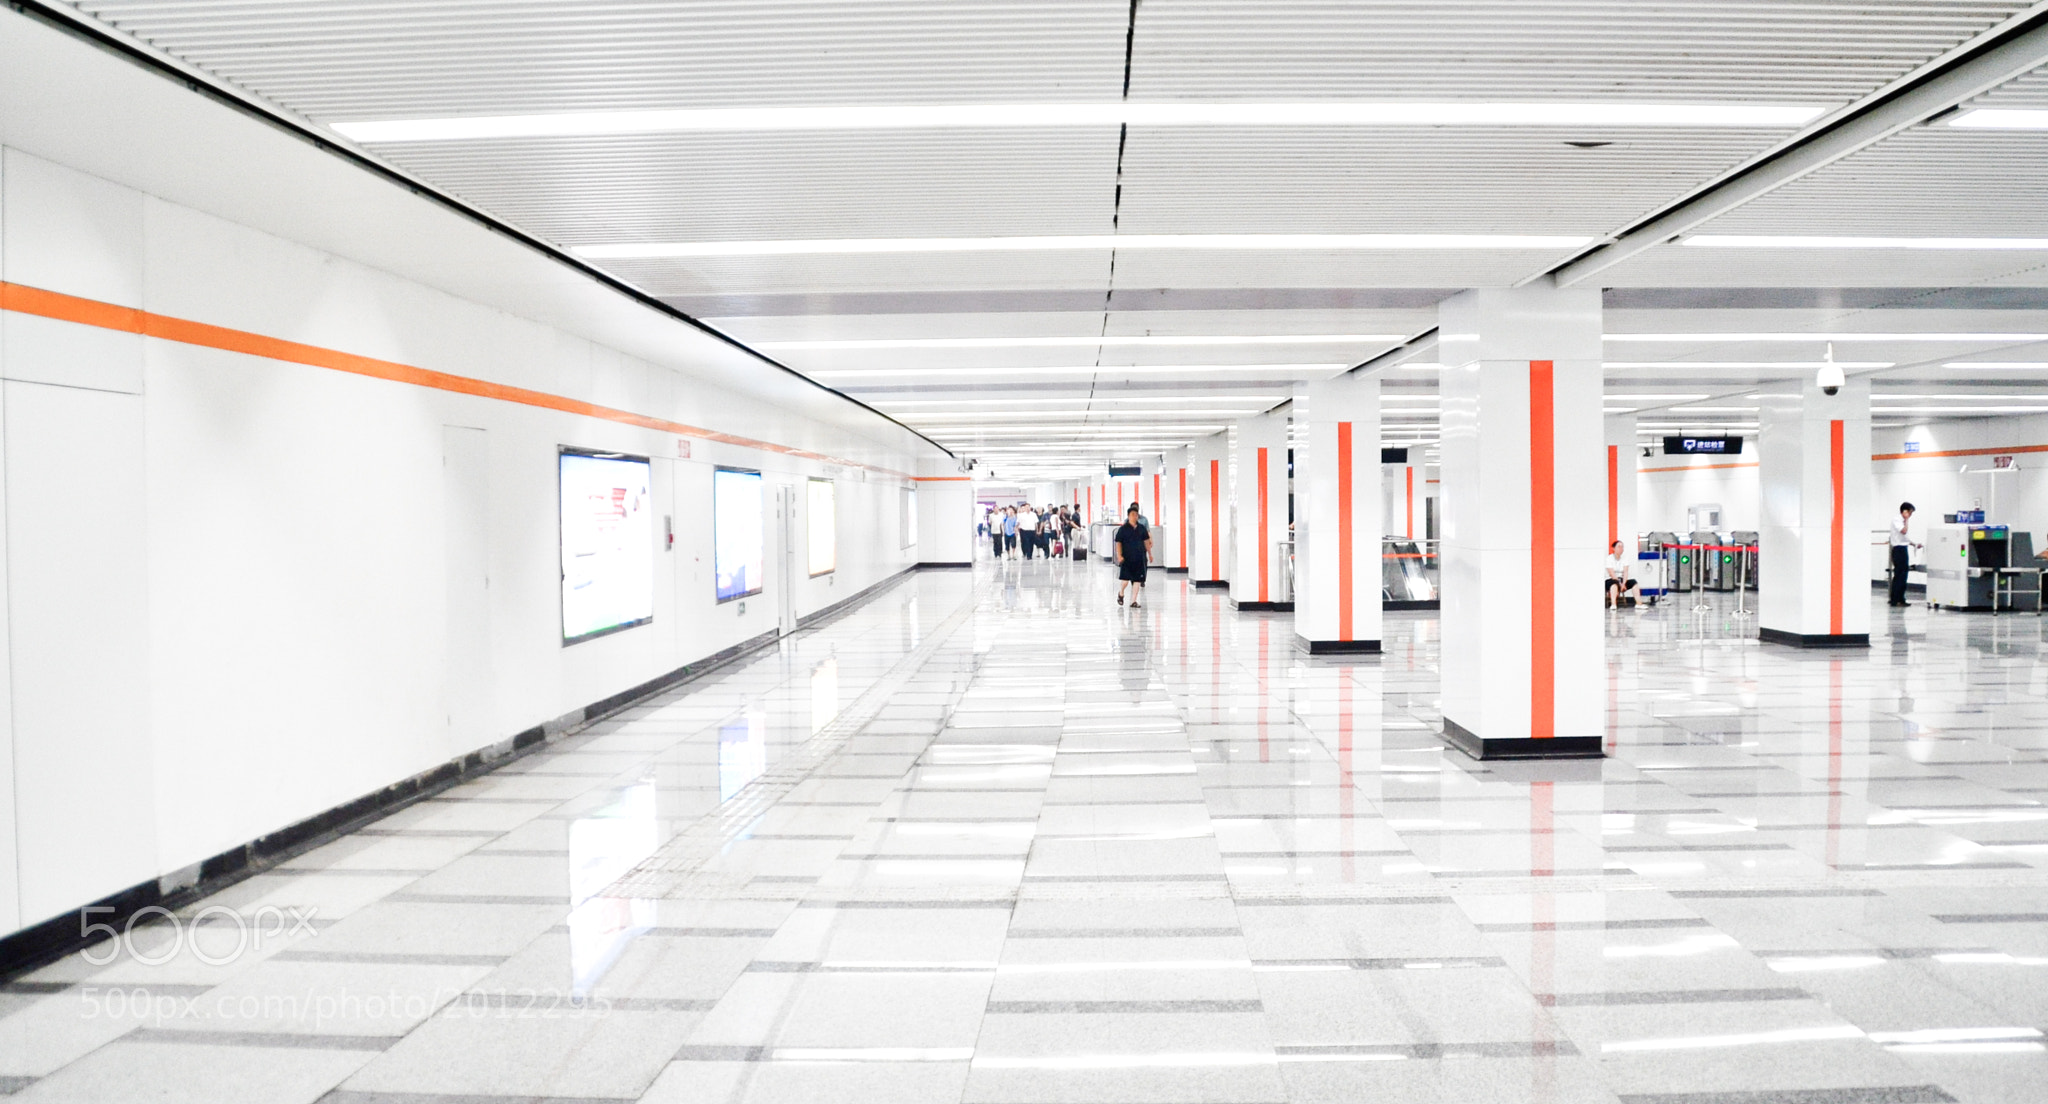 Photograph Shanghai subway by Alex Drl on 500px